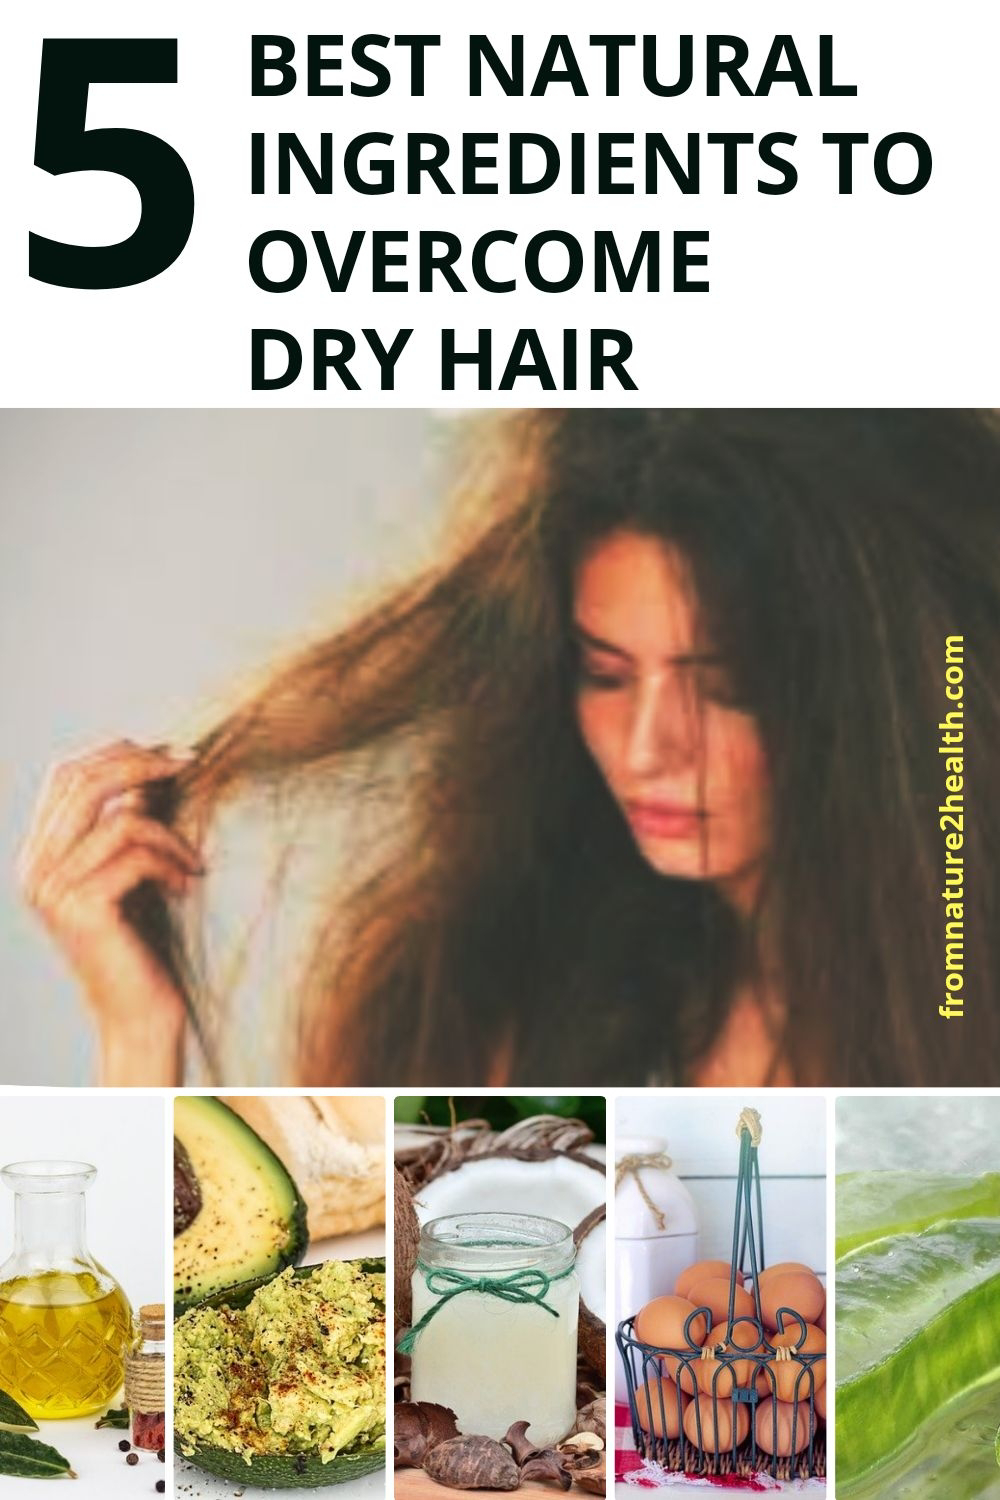 5 Best Natural Ingredients to Overcome Dry Hair : Egg, Coconut Oil, Avocado, Aloe Vera, Olive Oil